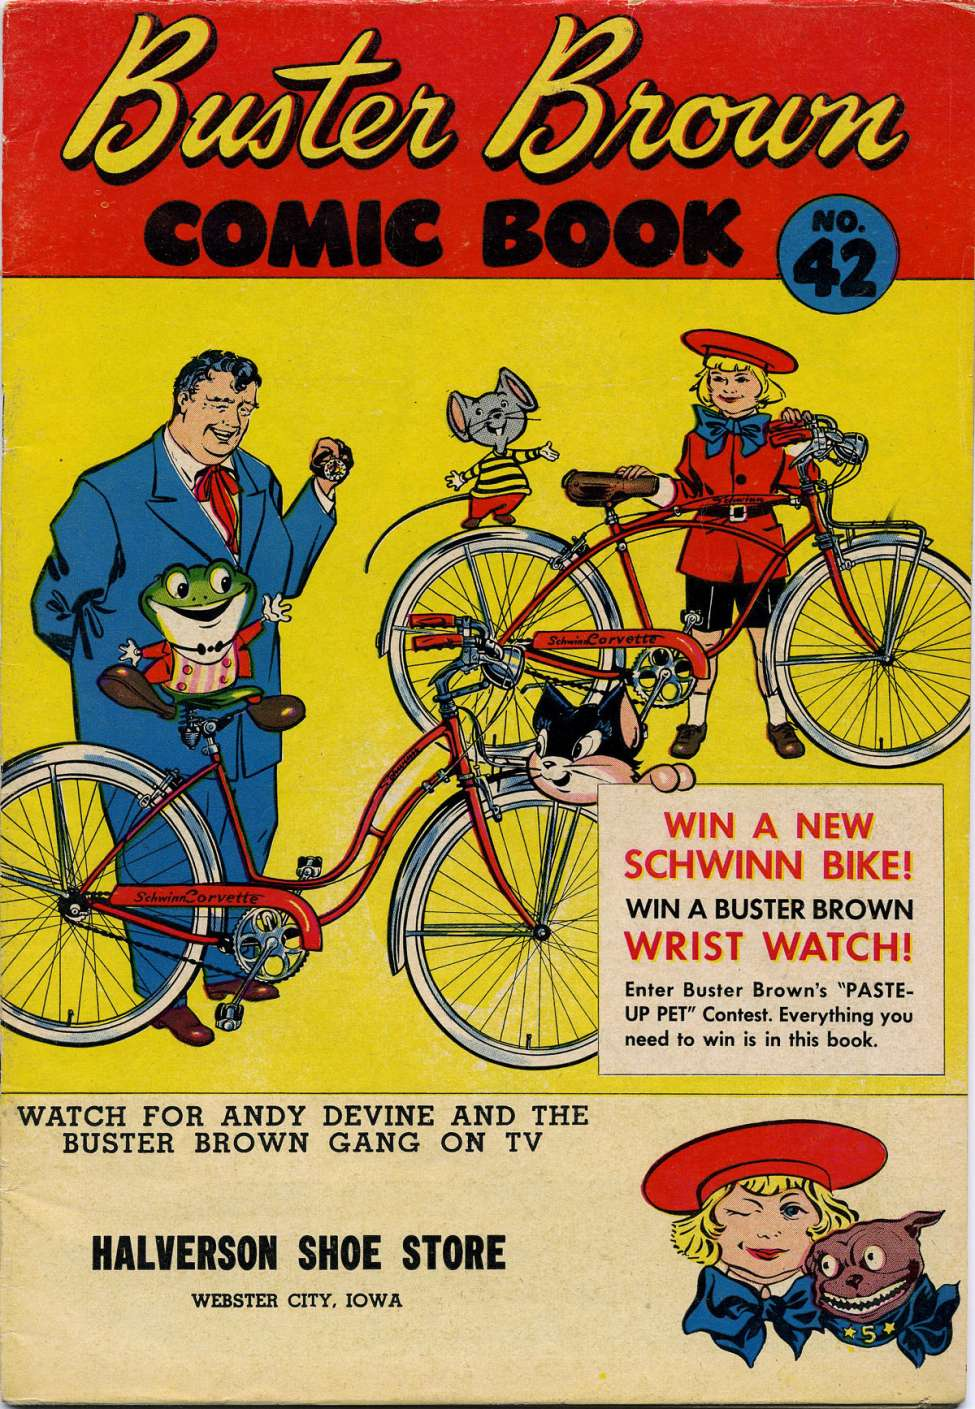 Comic Book Cover For Buster Brown Comic Book #42